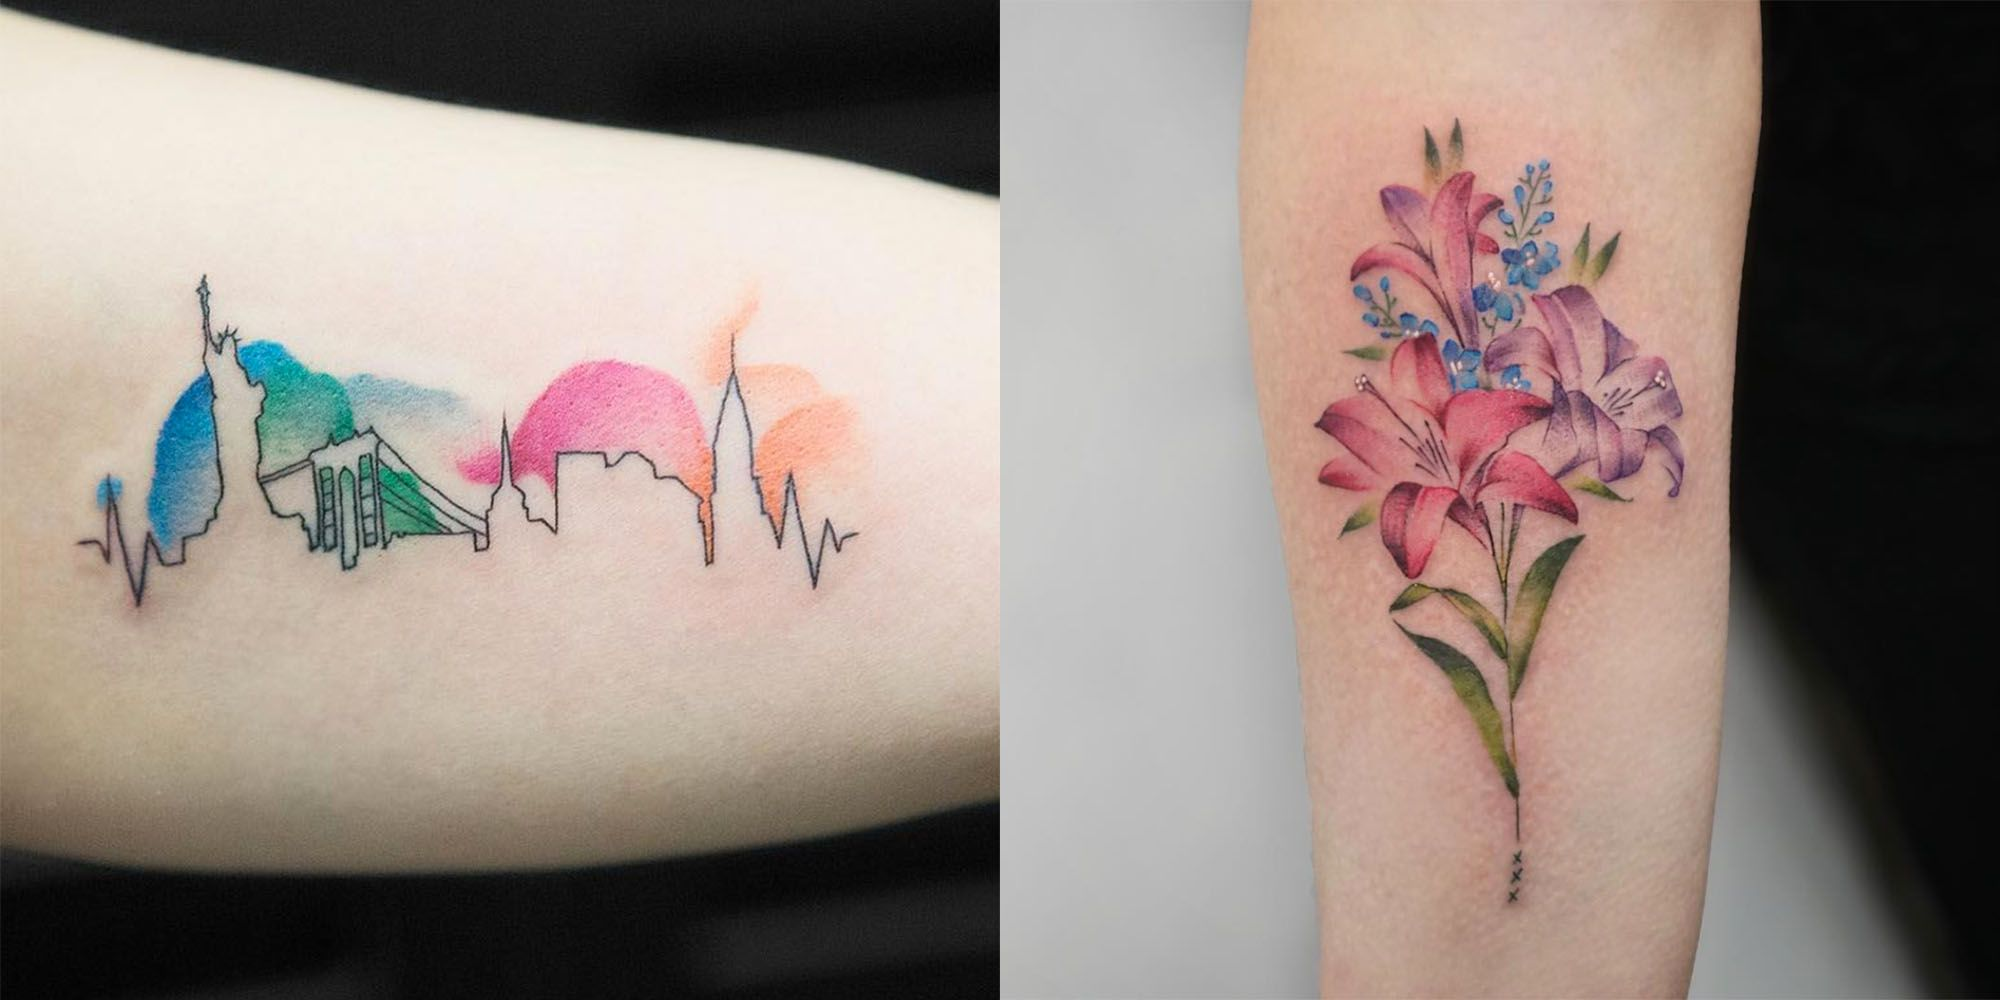 Watercolor tattoo artists in houston texas - 19 Best Tattoo Artists On Instagram Instagram Tattoo Artists To Follow Now